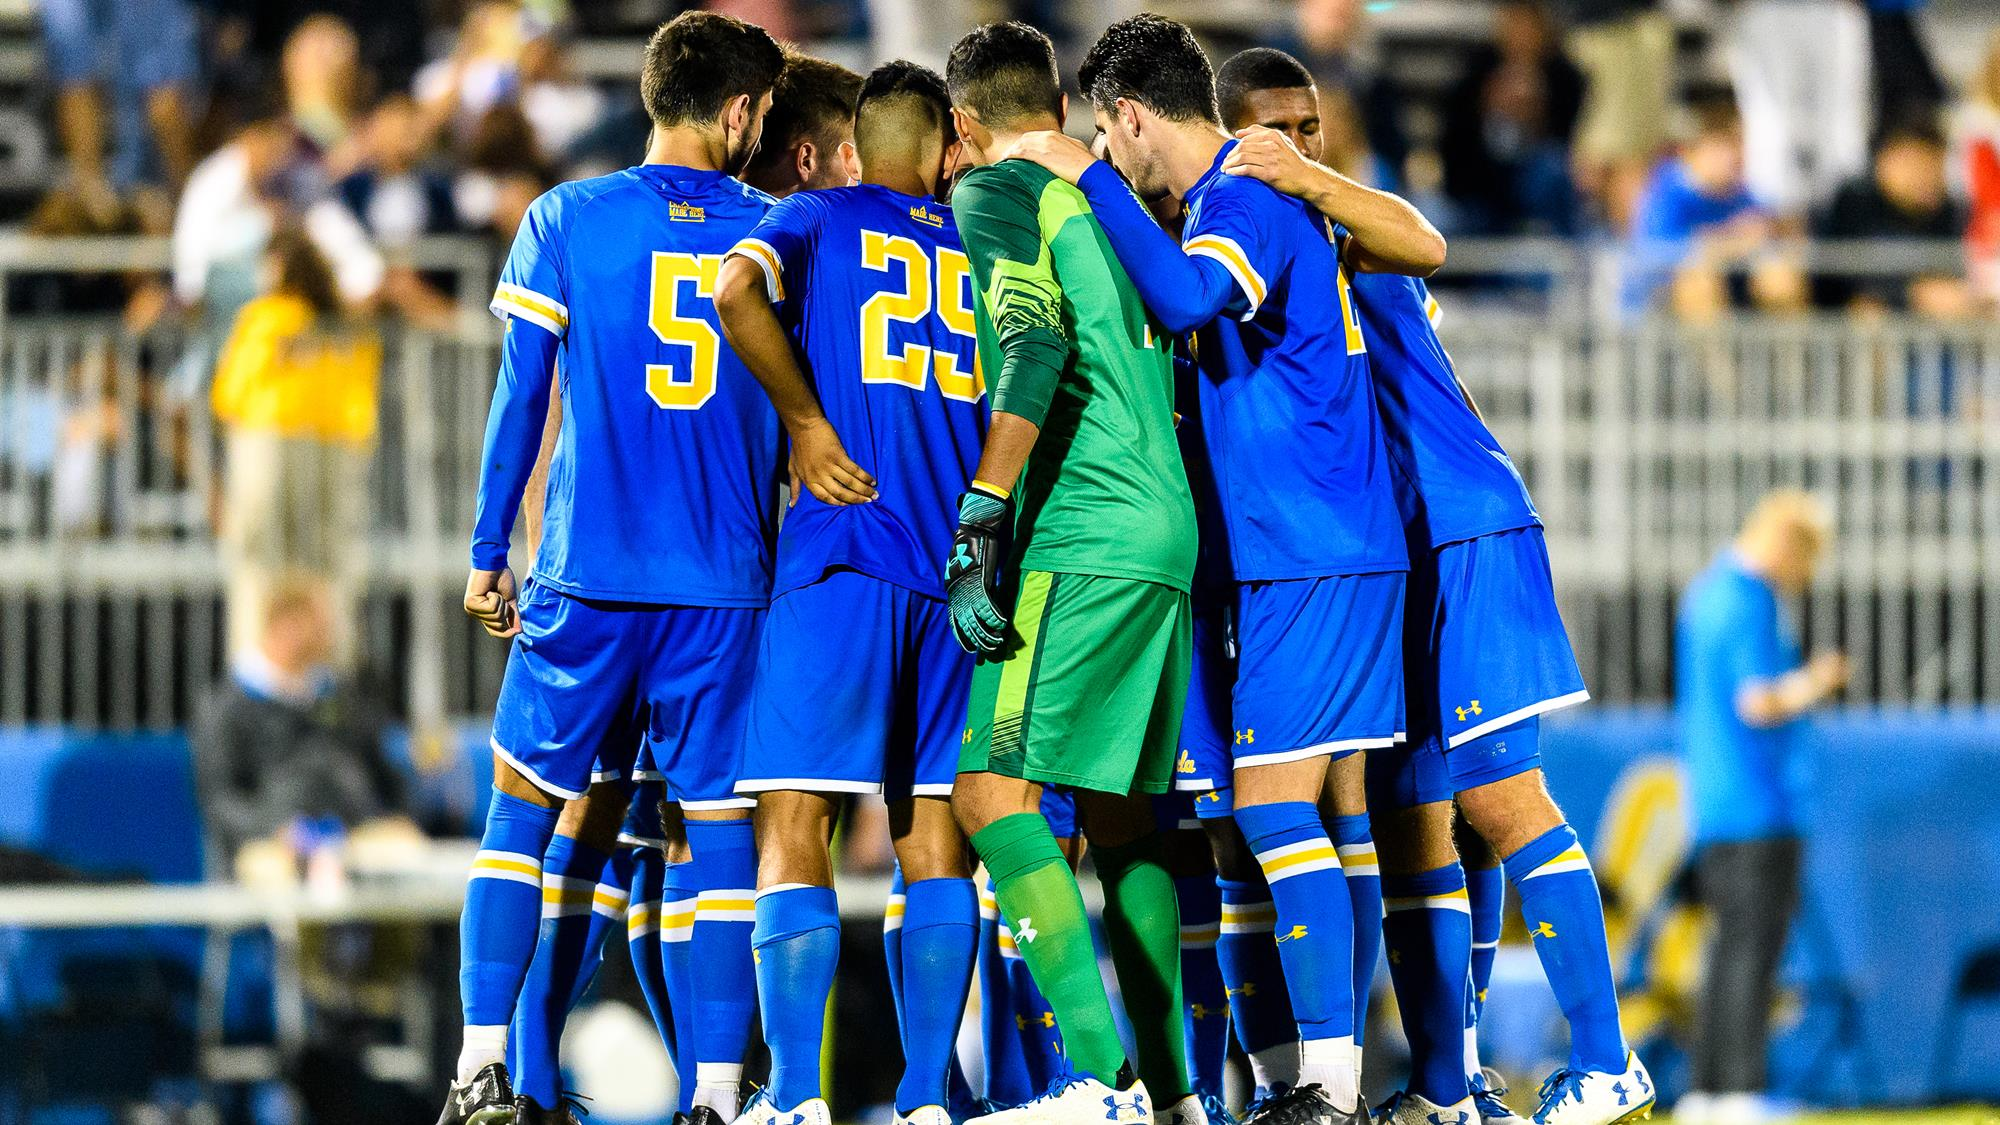 ce04a636767 Men's Soccer Plays Host to Washington, Oregon St. - UCLA